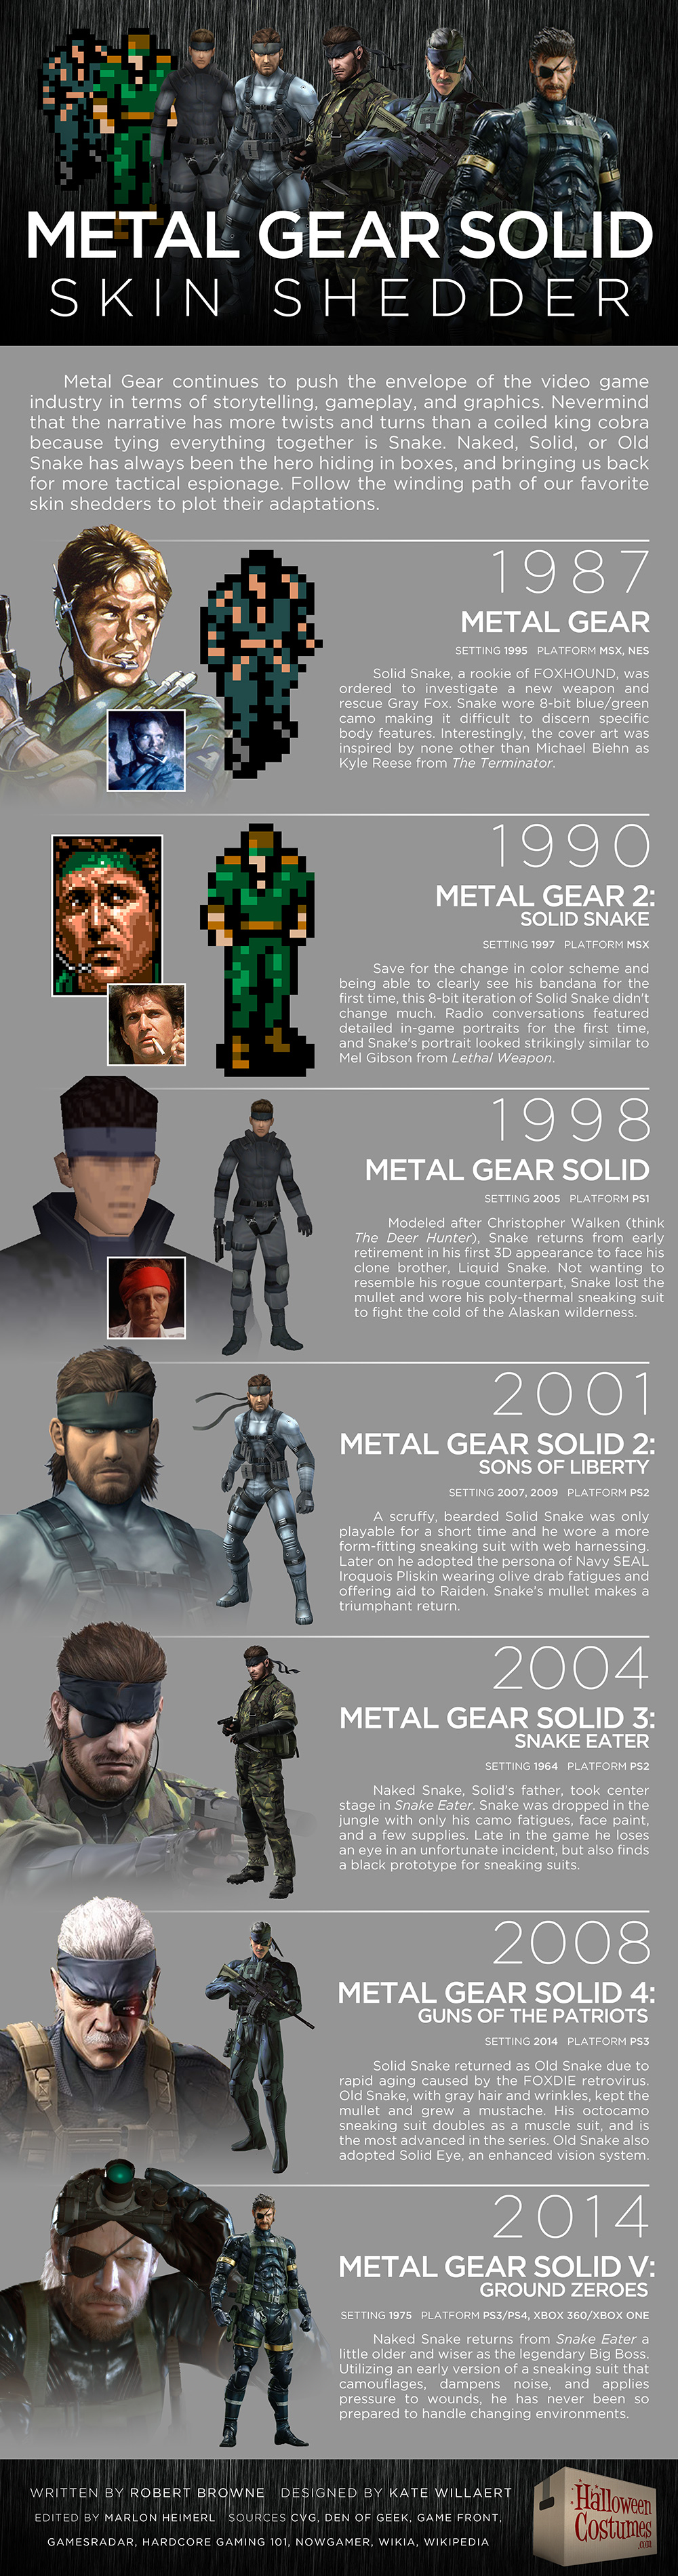 Metal-Gear-Solid-evolucion